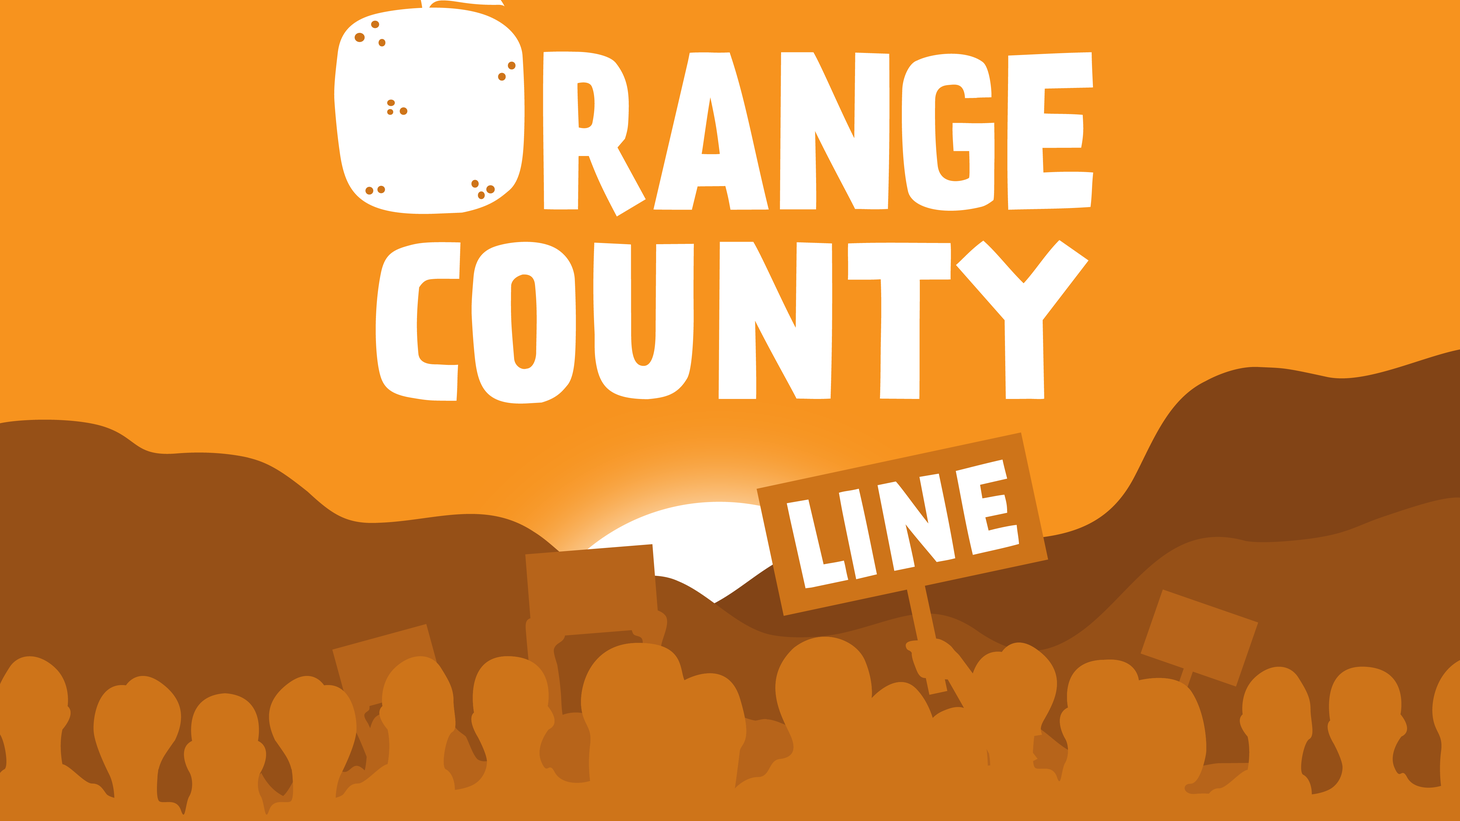 OC Weekly editor Gustavo Arellano brings us a weekly tour of the real Orange County - warts and all.